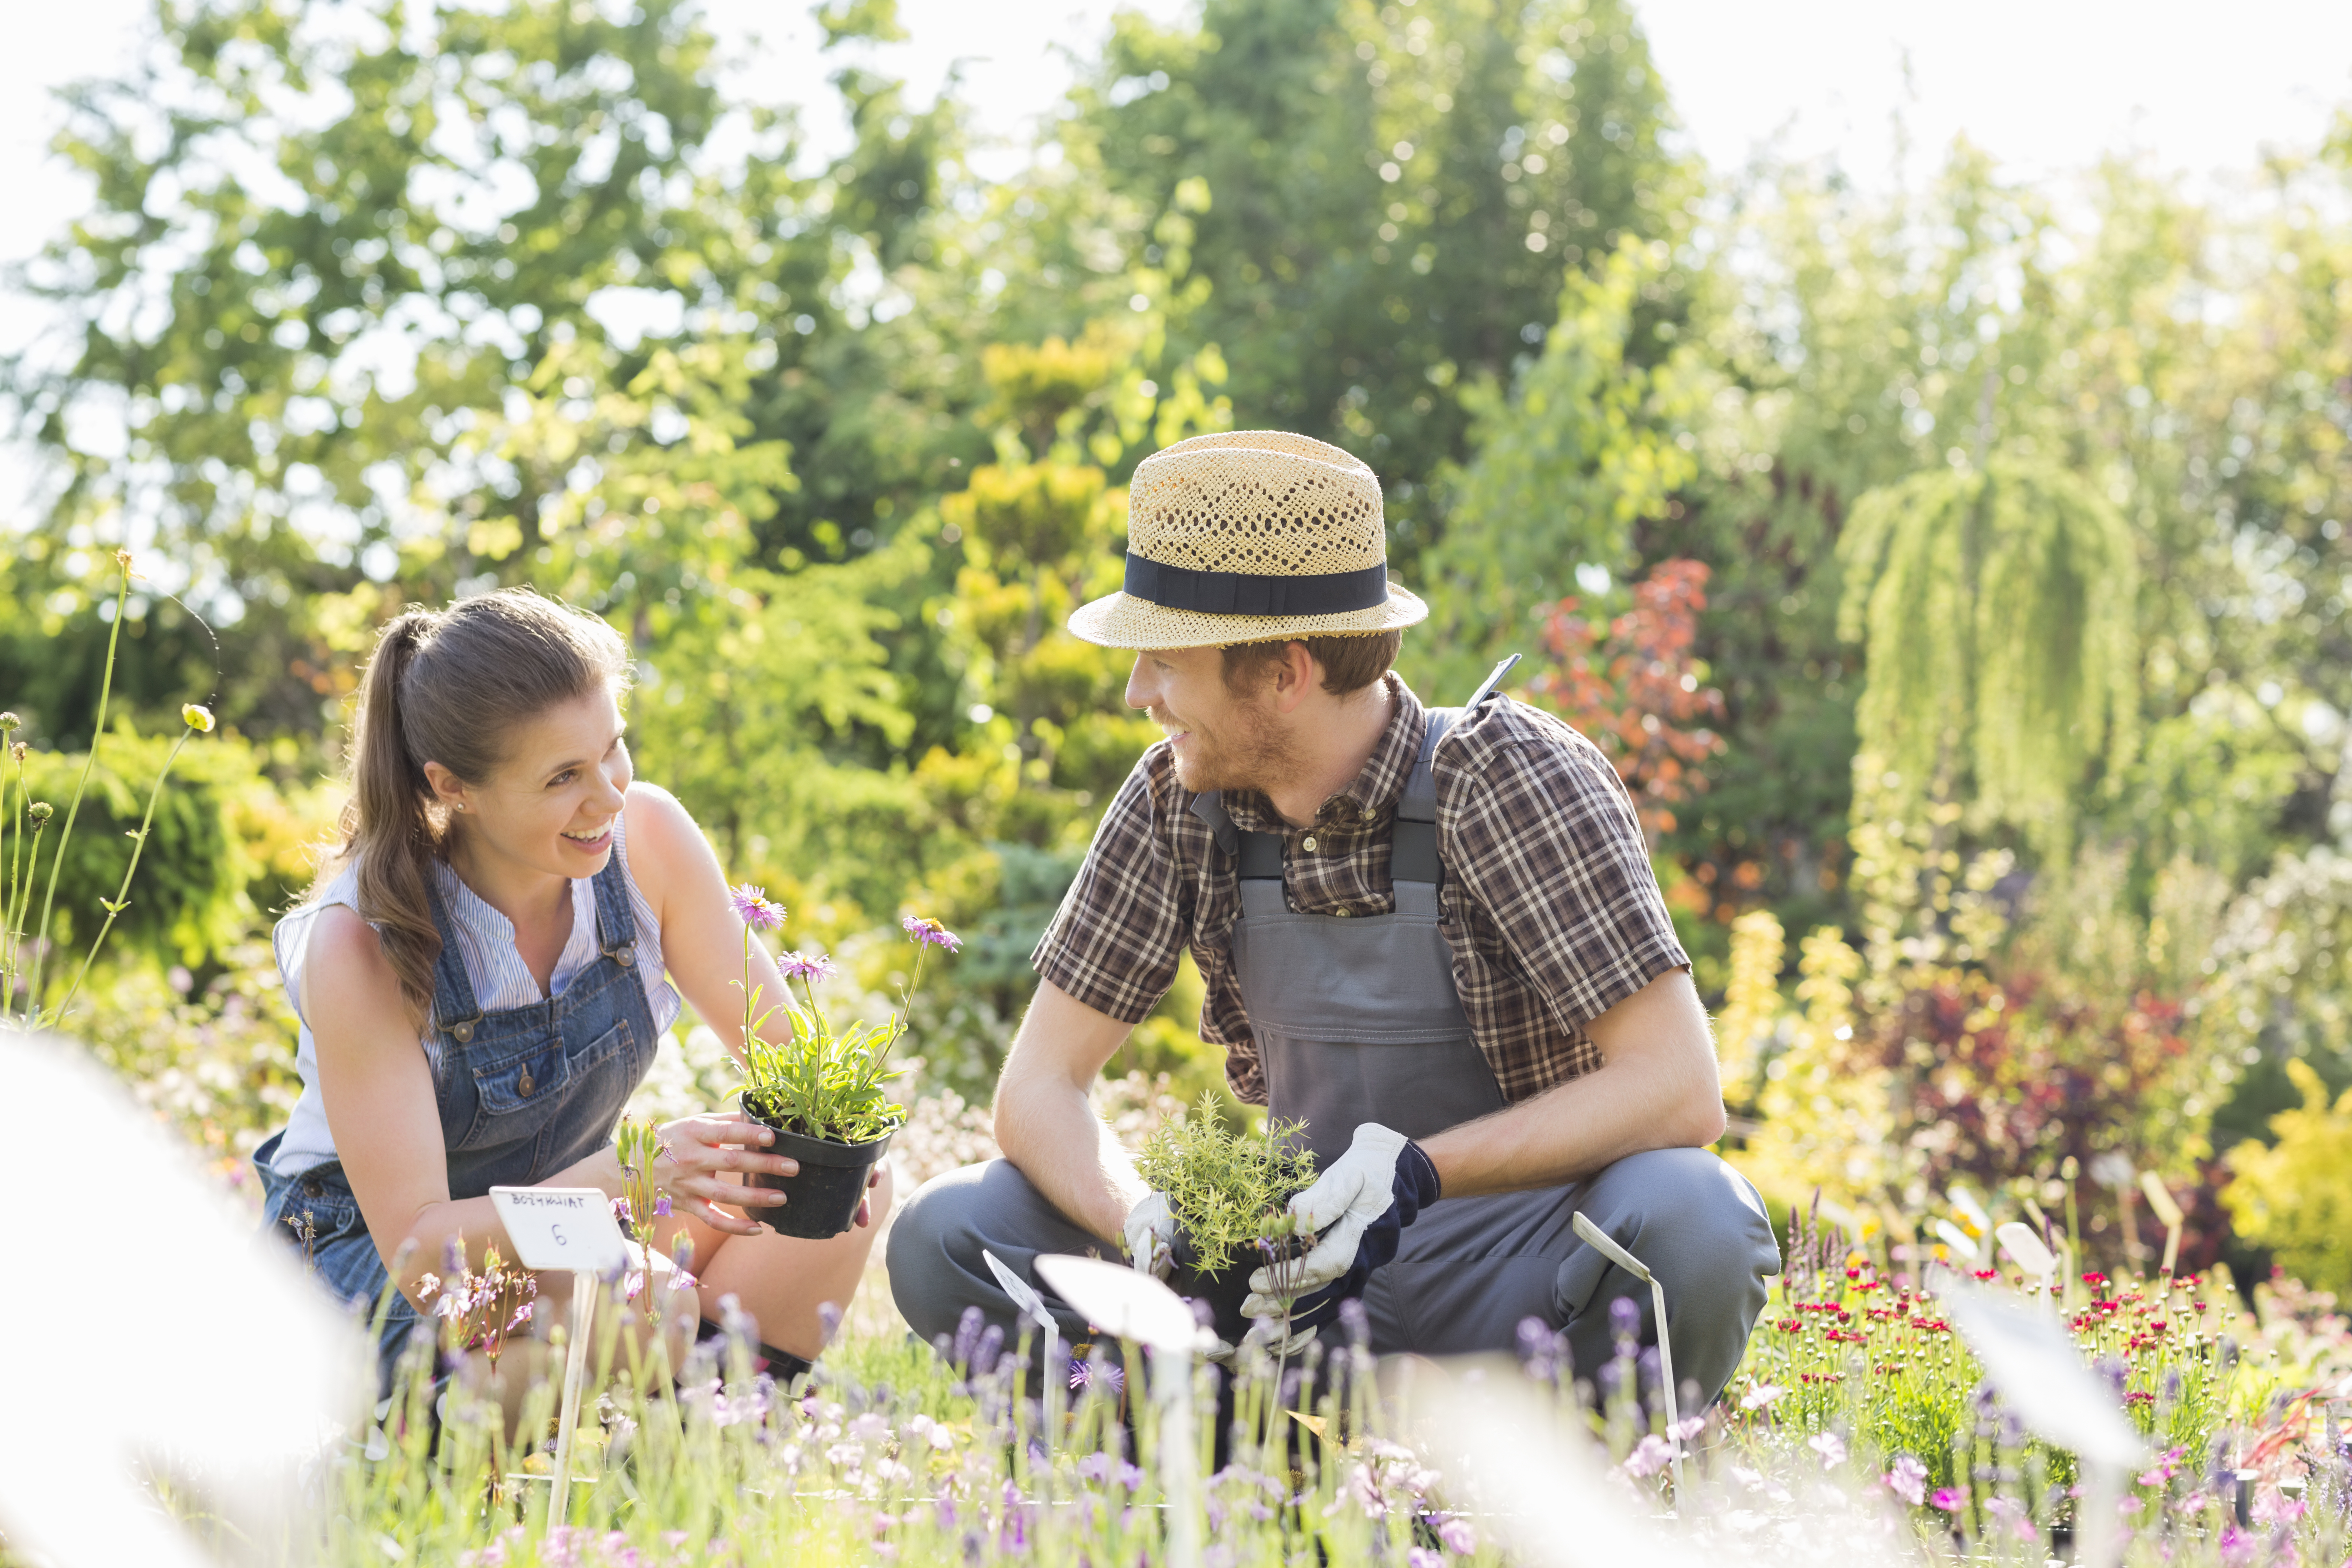 how to grow a good lawn